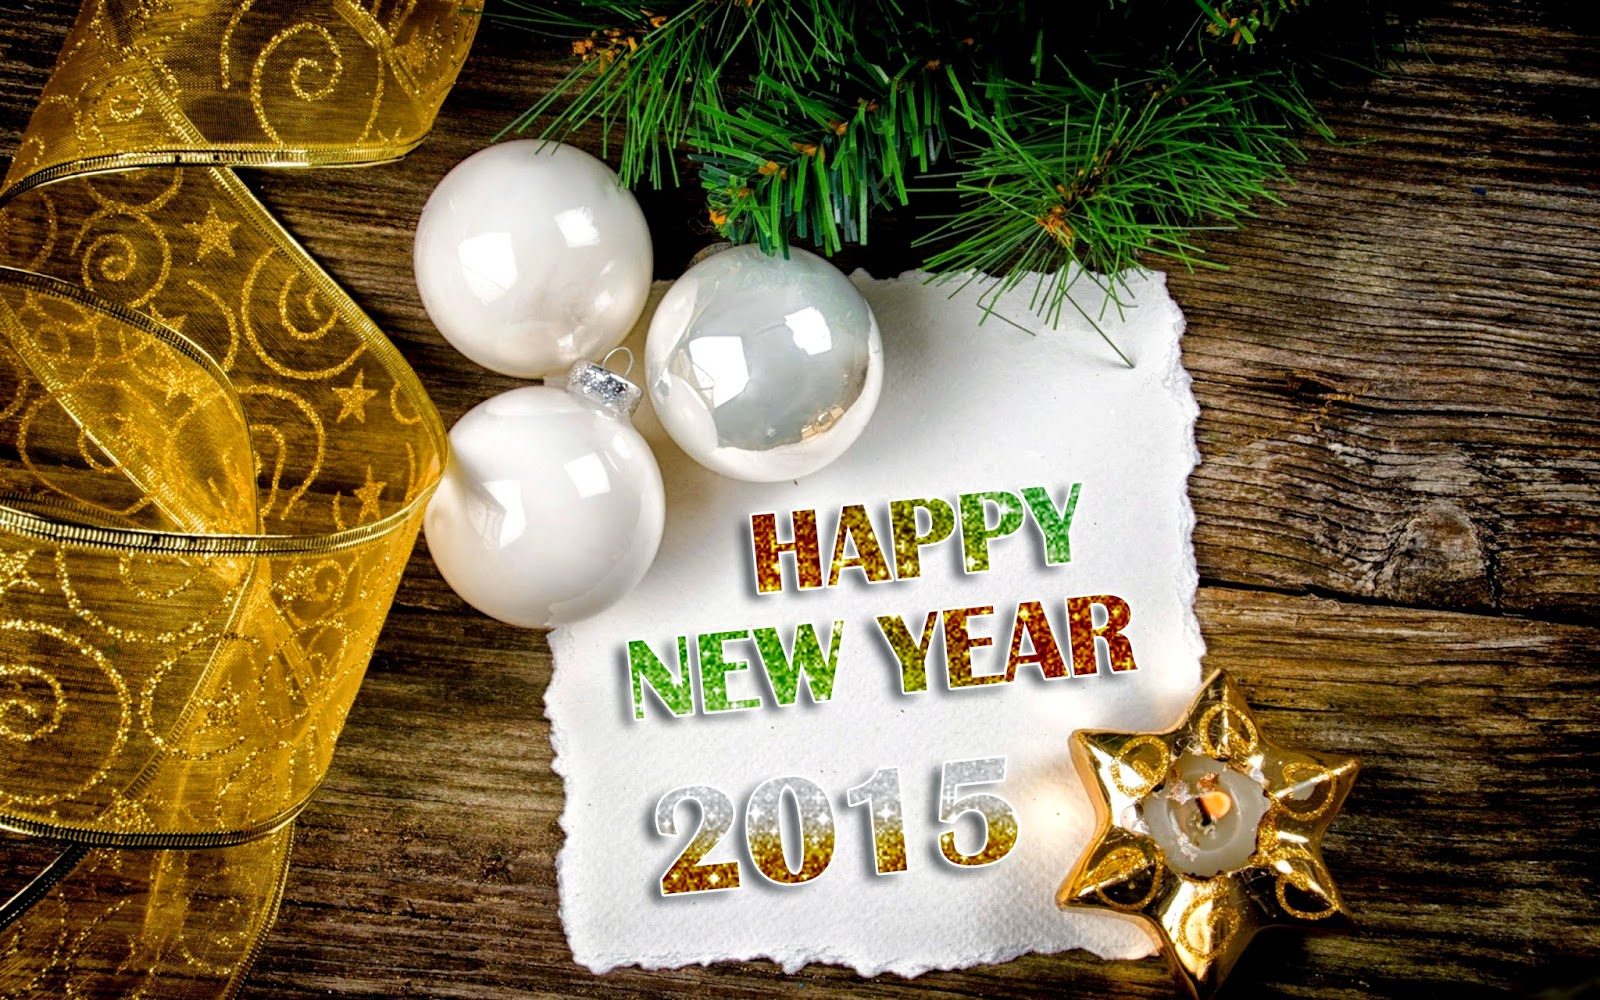 Top Class New Year Cards 2015 – Latest Wishing Cards Downloads